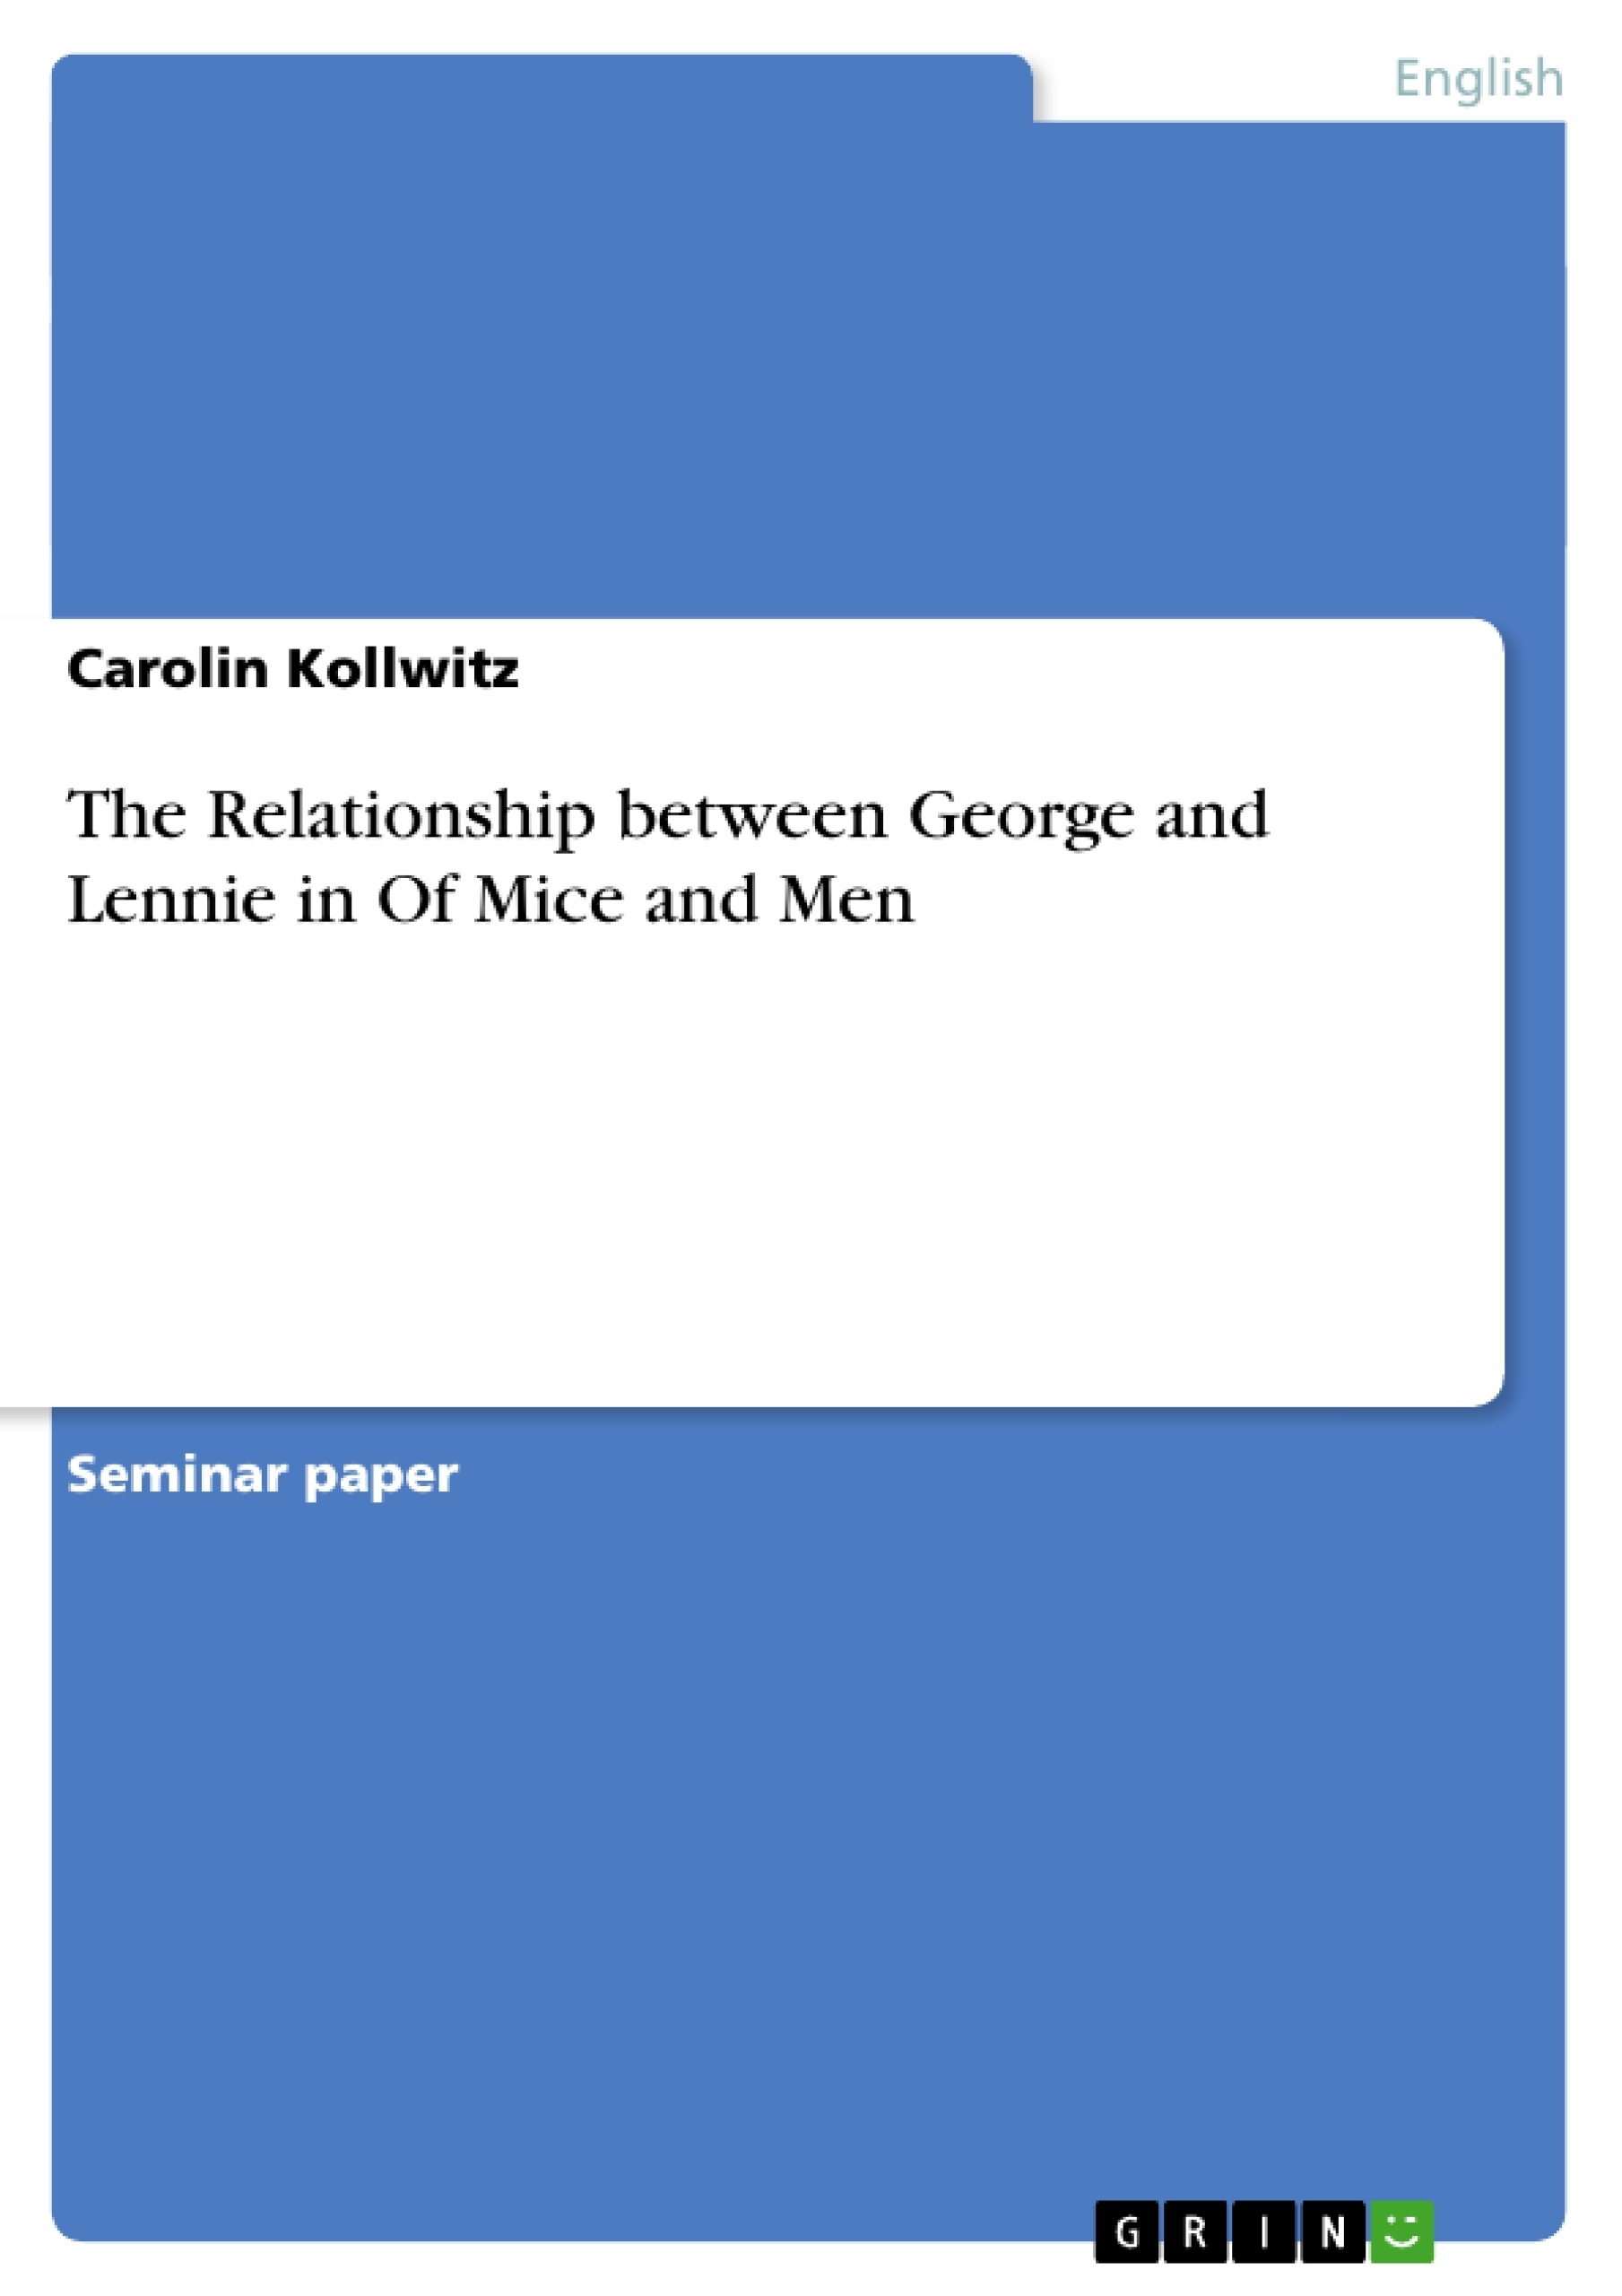 Of mice and men friendship between george and lennie essay